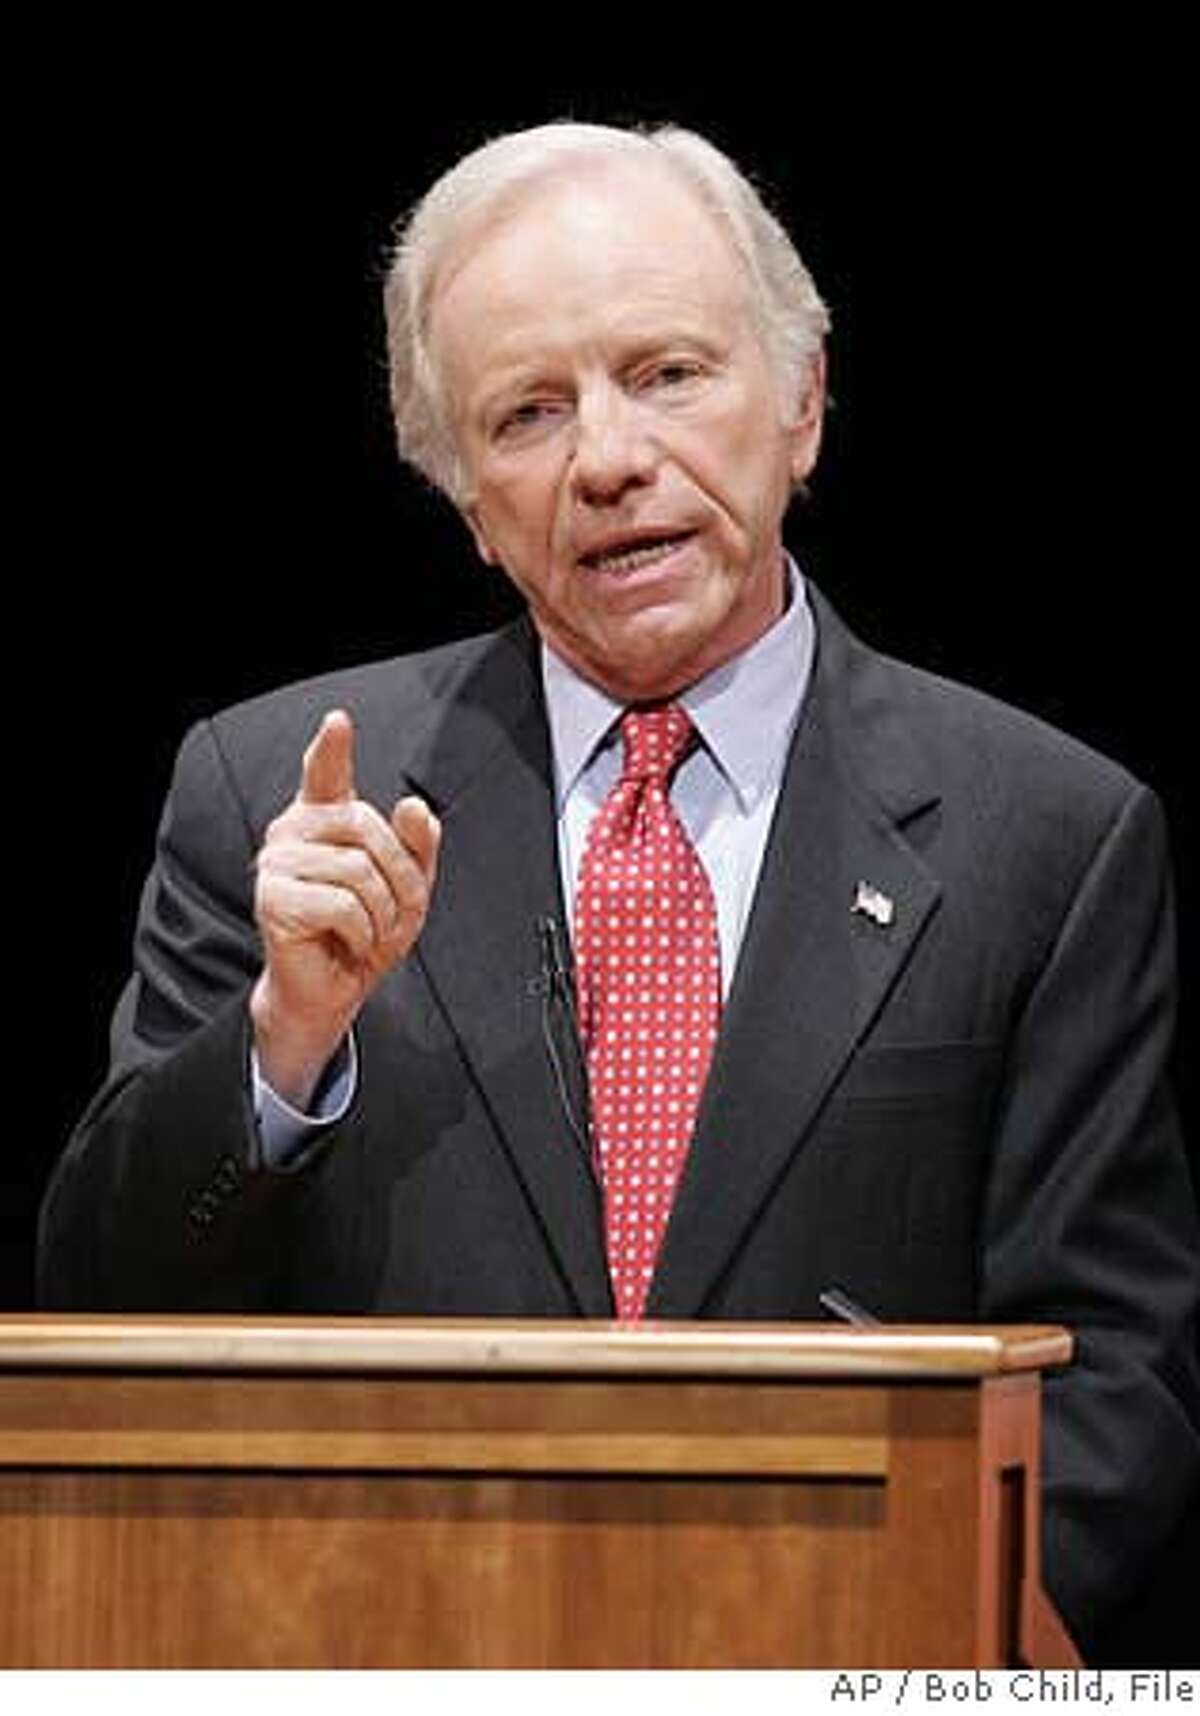 The U.S. Senator from Connecticut ran as an independent in 2006 after losing in the Democratic Primary.